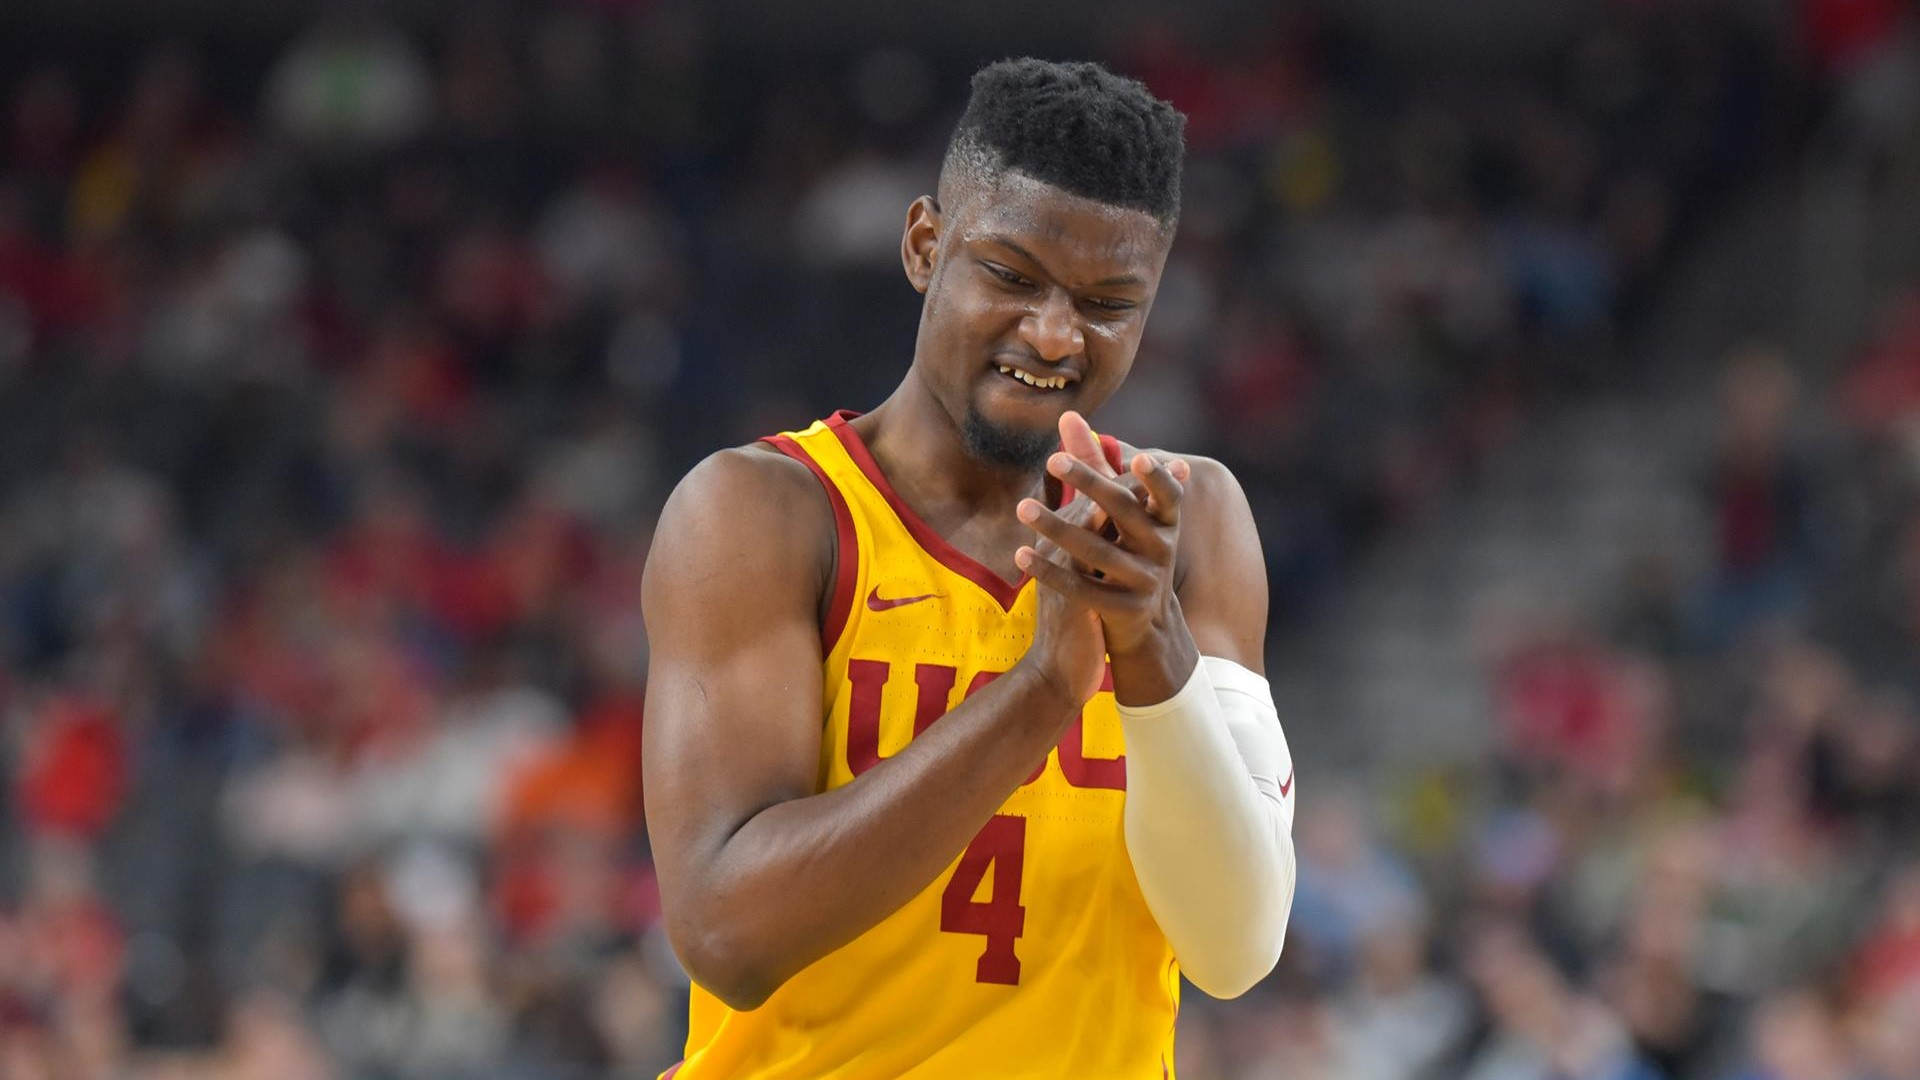 Chimezie_claps_at_pac_12sjmcg